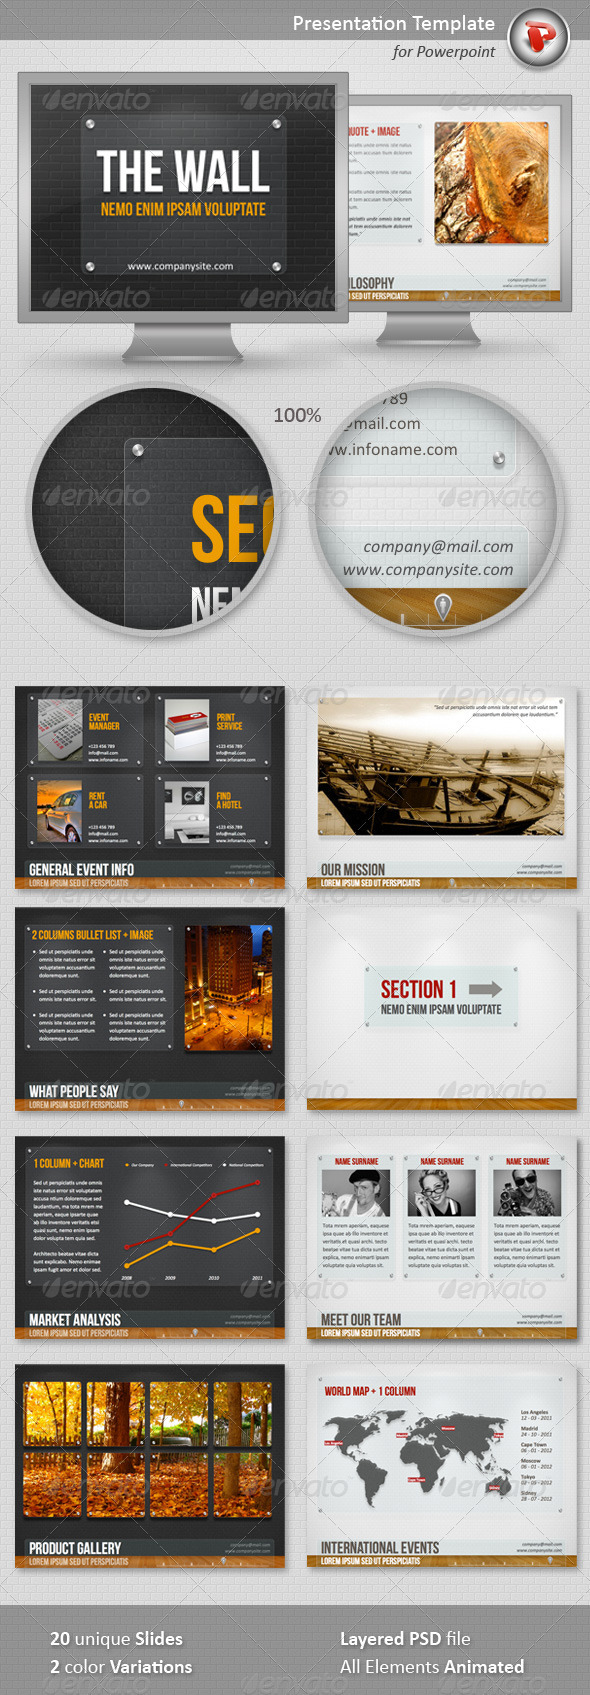 The Wall PowerPoint Template - Powerpoint Templates Presentation Templates